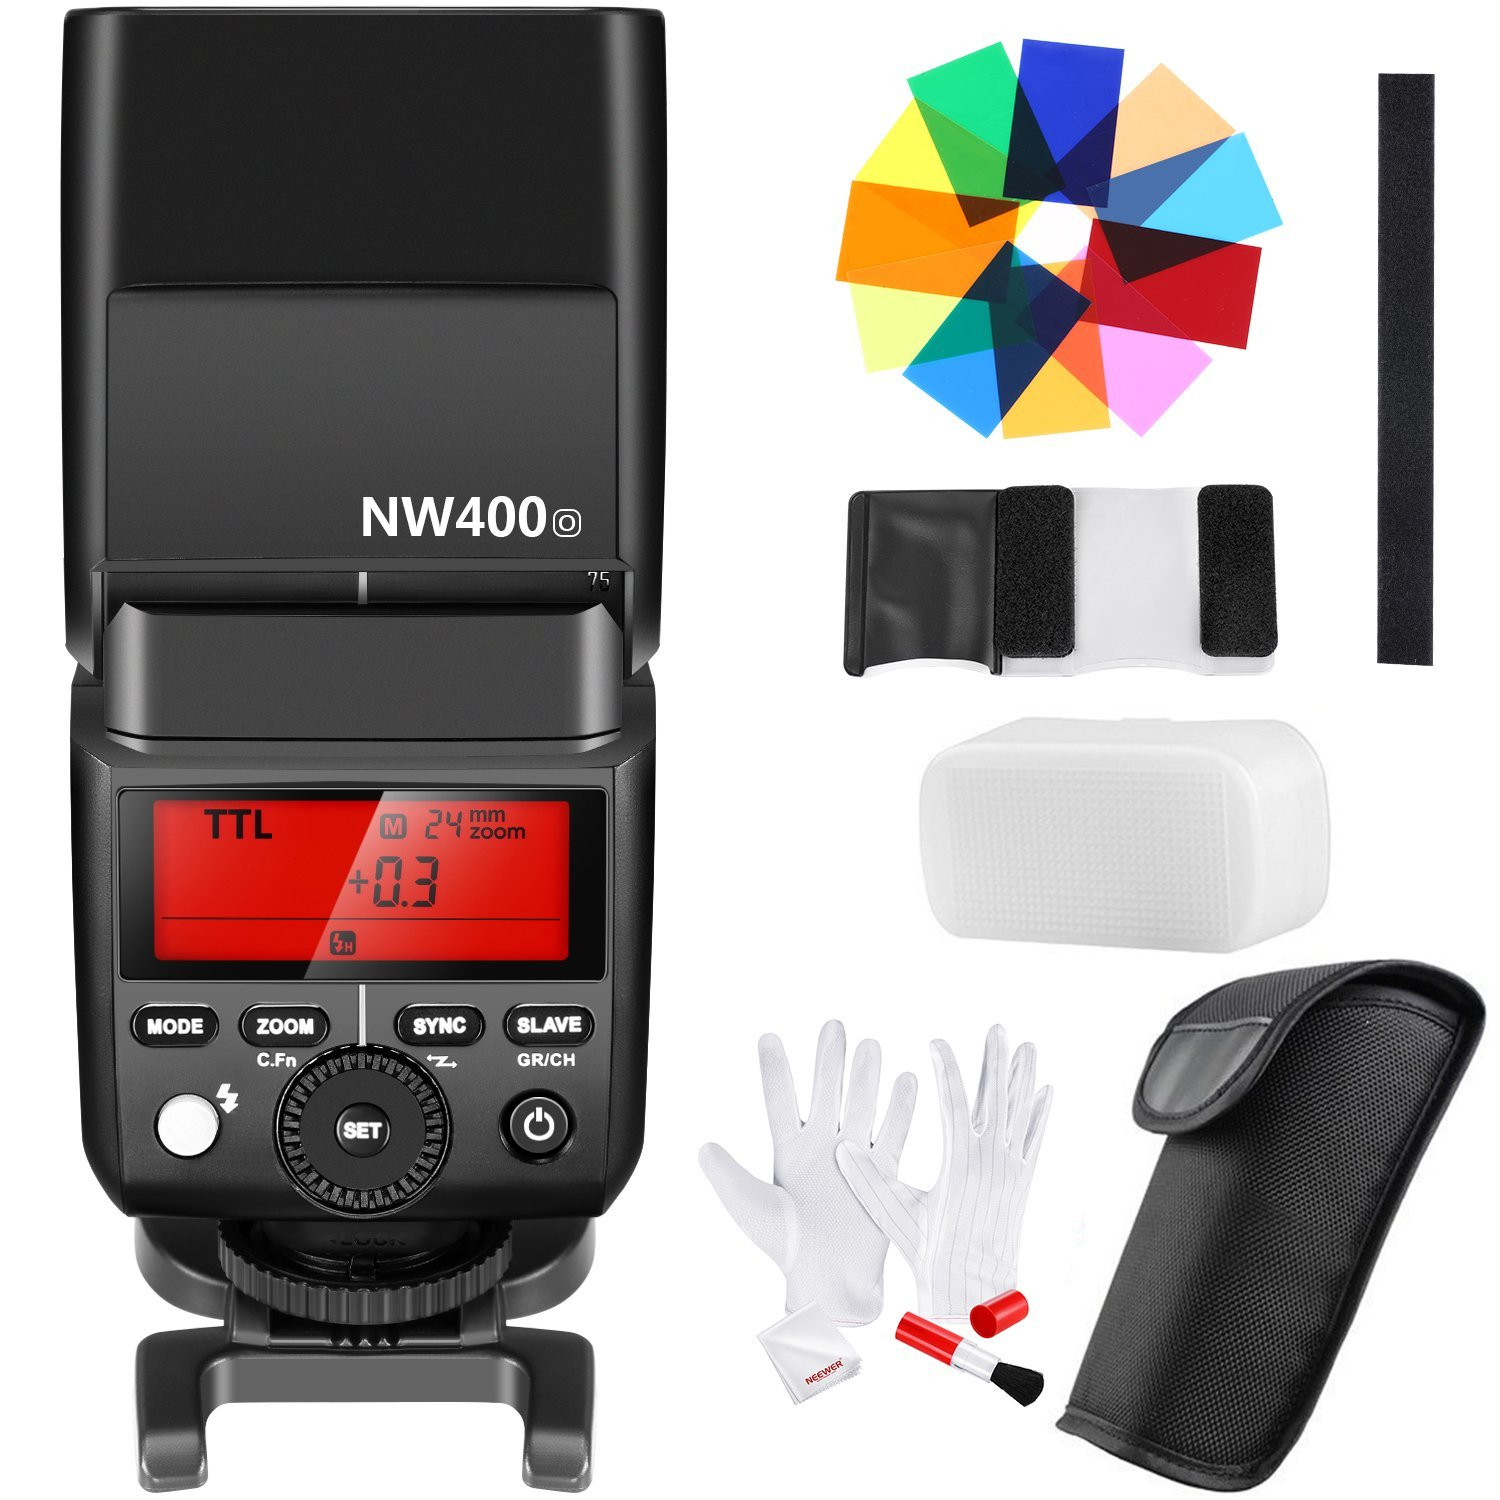 Neewer Master Slave Speedlite Flash(2.4G Wireless TTL HSS 1/8000s) with 12-Piece Color Filters and 3-in-1 Cleaning Kit for Olympus E-M10II M1 E-PL8 PL7 PL6,Panasonic DMC-GX85 G7 GF1 LX100 G85(NW400o) by Neewer